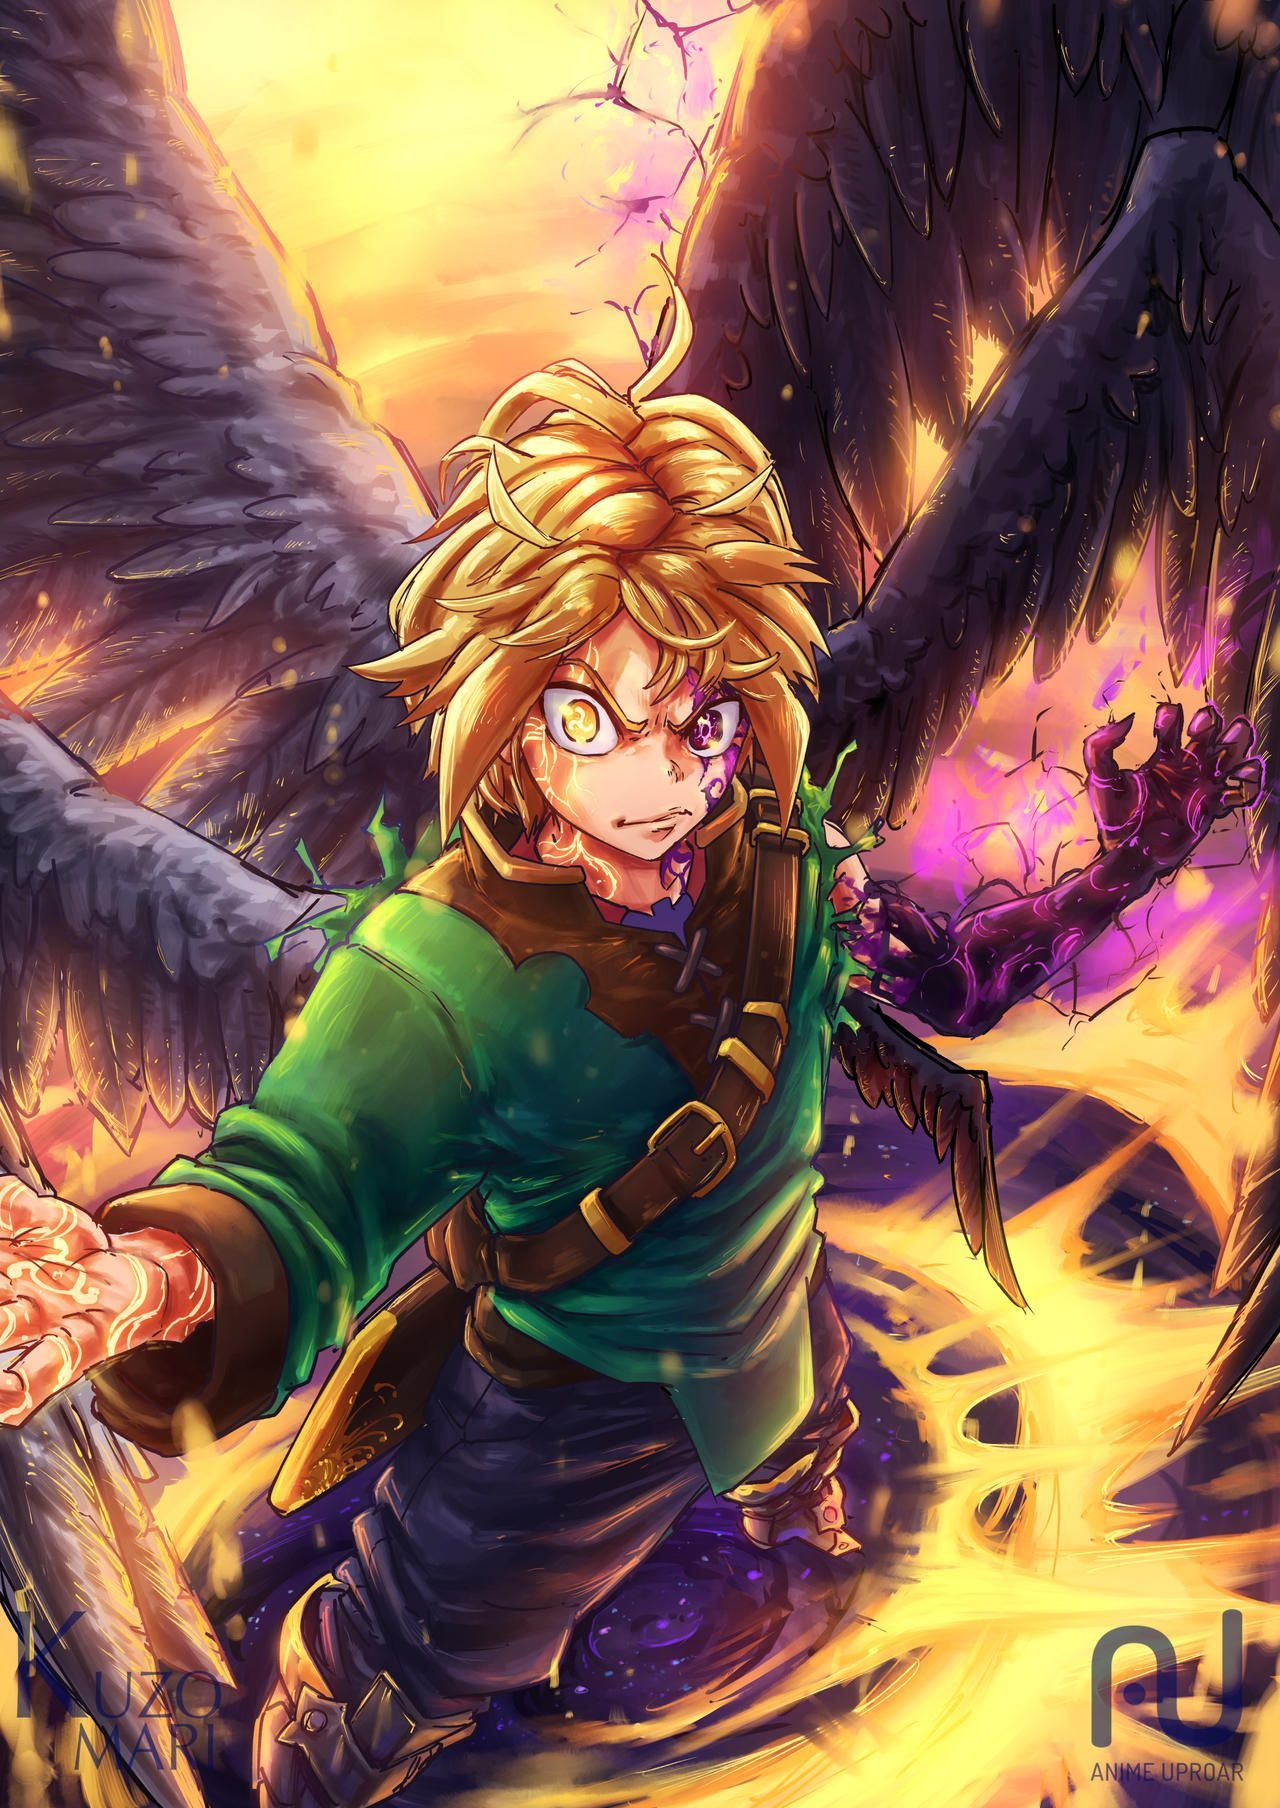 Y N Is The Son Of Meliodas The Sin Of Wrath Or Demon Prince How Ever Fanfiction Fanfictio Seven Deadly Sins Anime Seven Deadly Sins Wrath Seven Deadly Sins